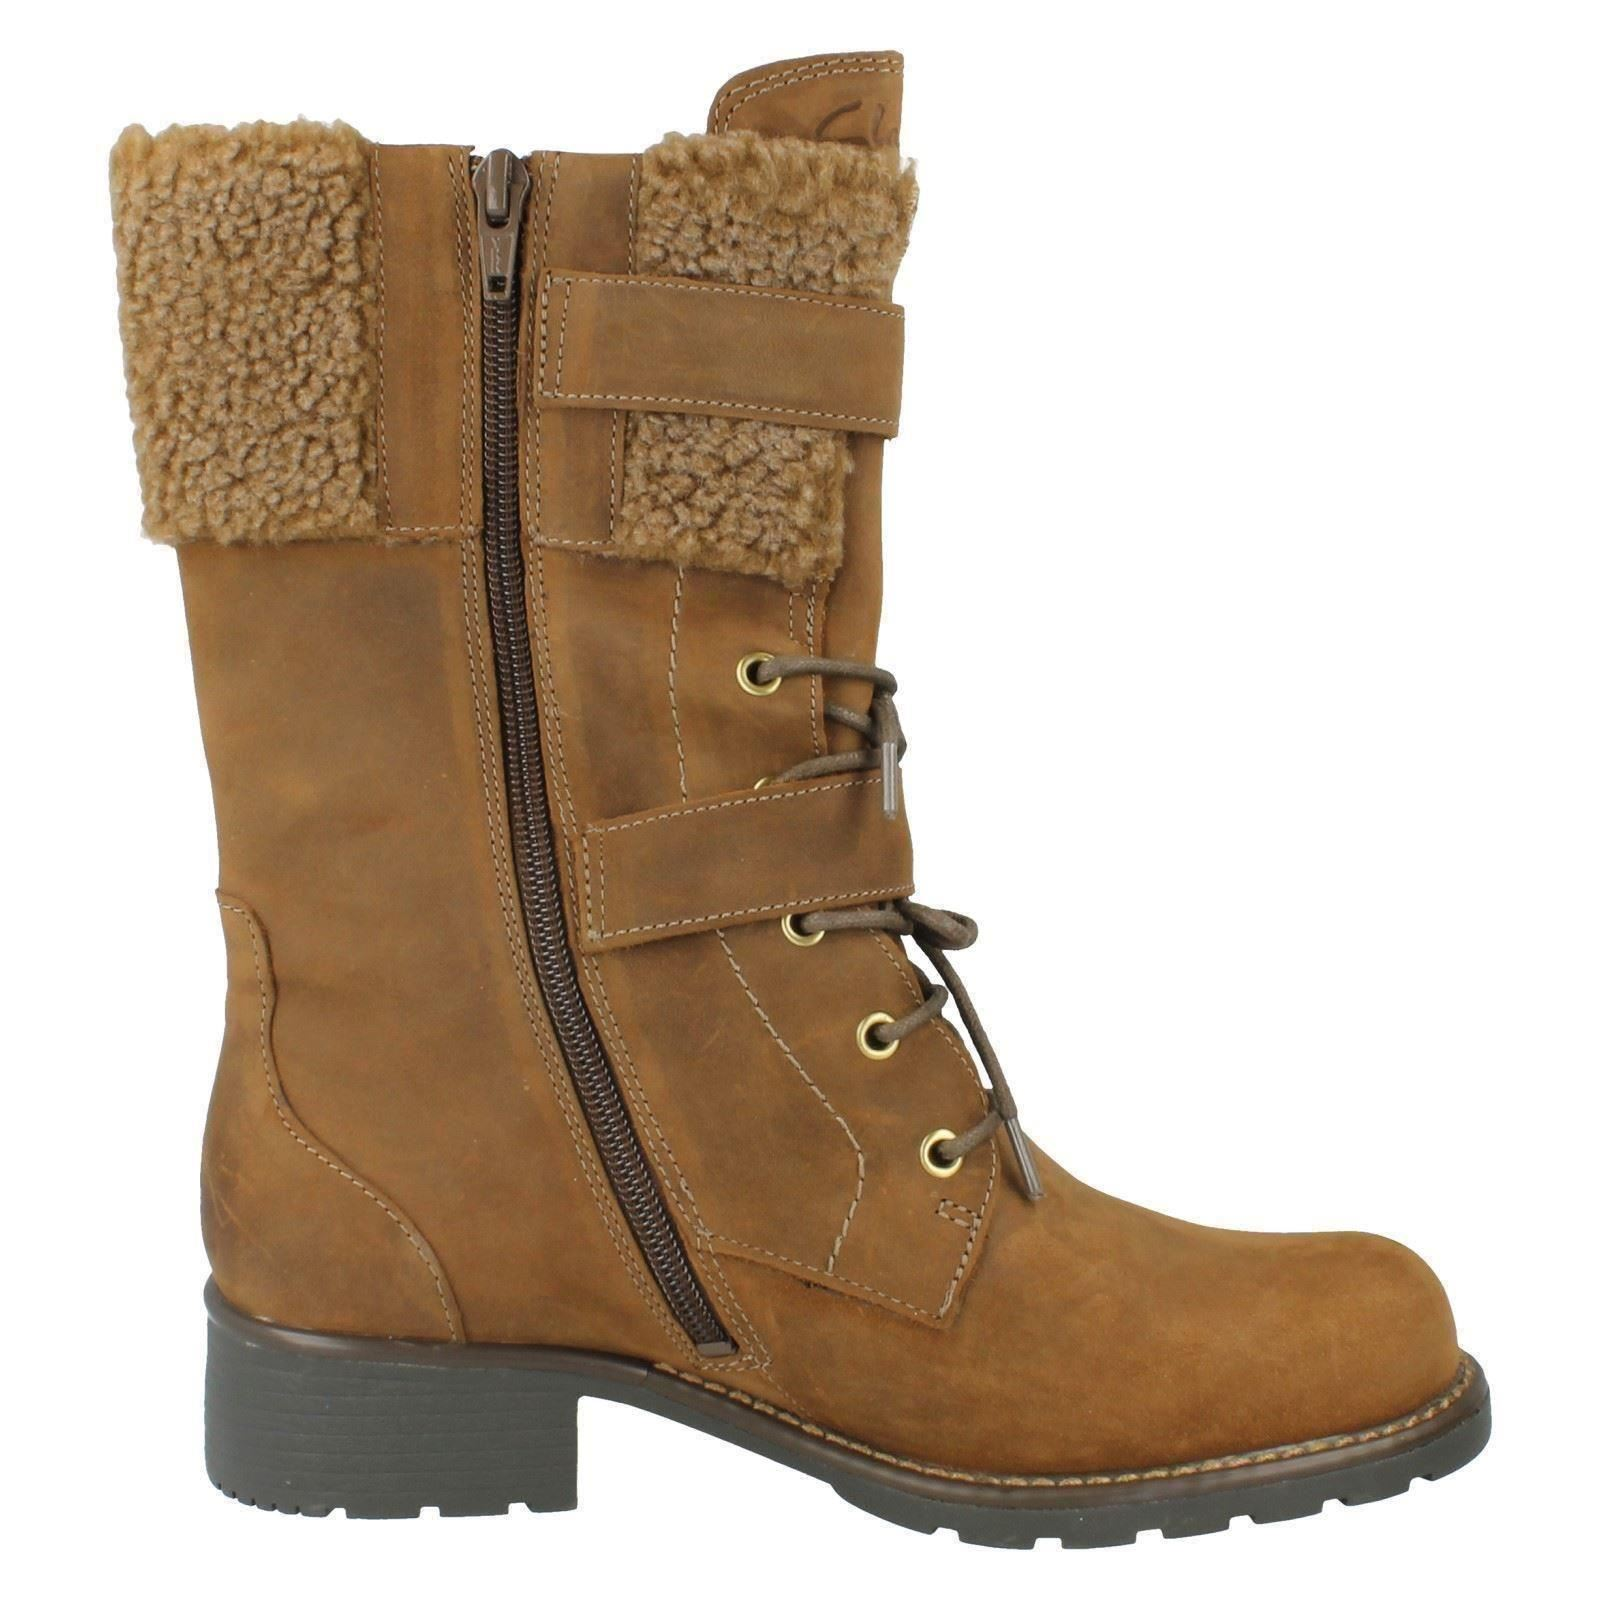 Ladies Clarks Boots Boots Boots Label Orinoco Prize 7c8bd6